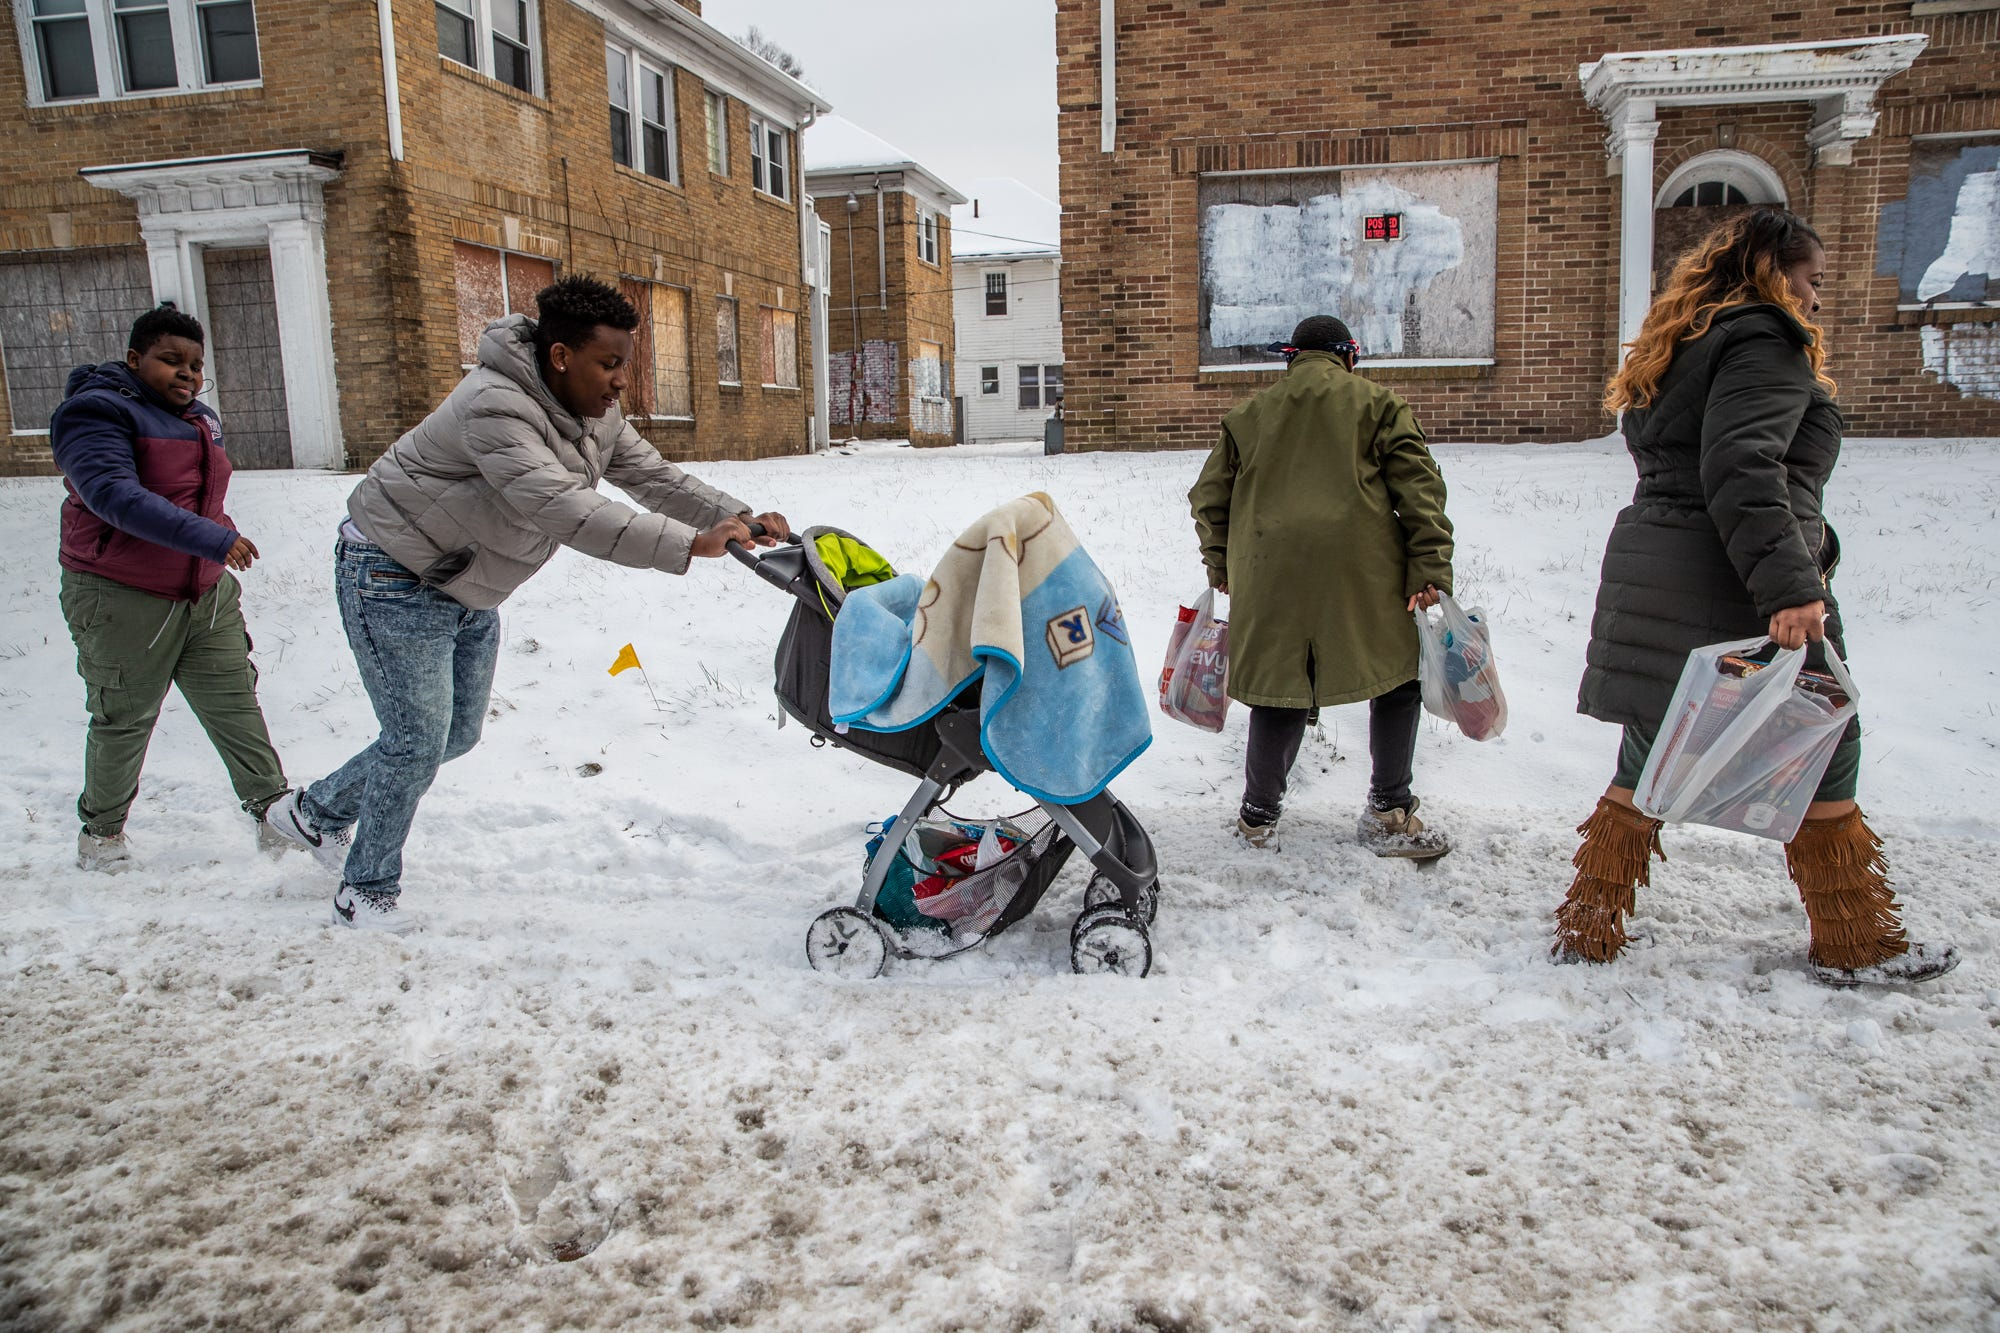 """Takkara Delaney (right) walks on an uncleared sidewalk along 38th Street in Indianapolis with her children Friday, Feb. 1, 2019, after shopping for Super Bowl party food at Family Dollar for a party she's throwing for her sons. Dai Reid, 14, (middle left) who Delaney adopted, and Tyree Delaney (left) struggle to push Tytus Delaney, 10 months, in the stroller. """"The boys are always helpful,"""" said Takkara. """"They go above and beyond to make sure I'm OK when it should be the other way around. Their hearts are so big."""" Tyler Delaney, 11, carries two bags filled with the family's favorite snacking chips. Three of Delaney's boys play for the Indy Steelers."""